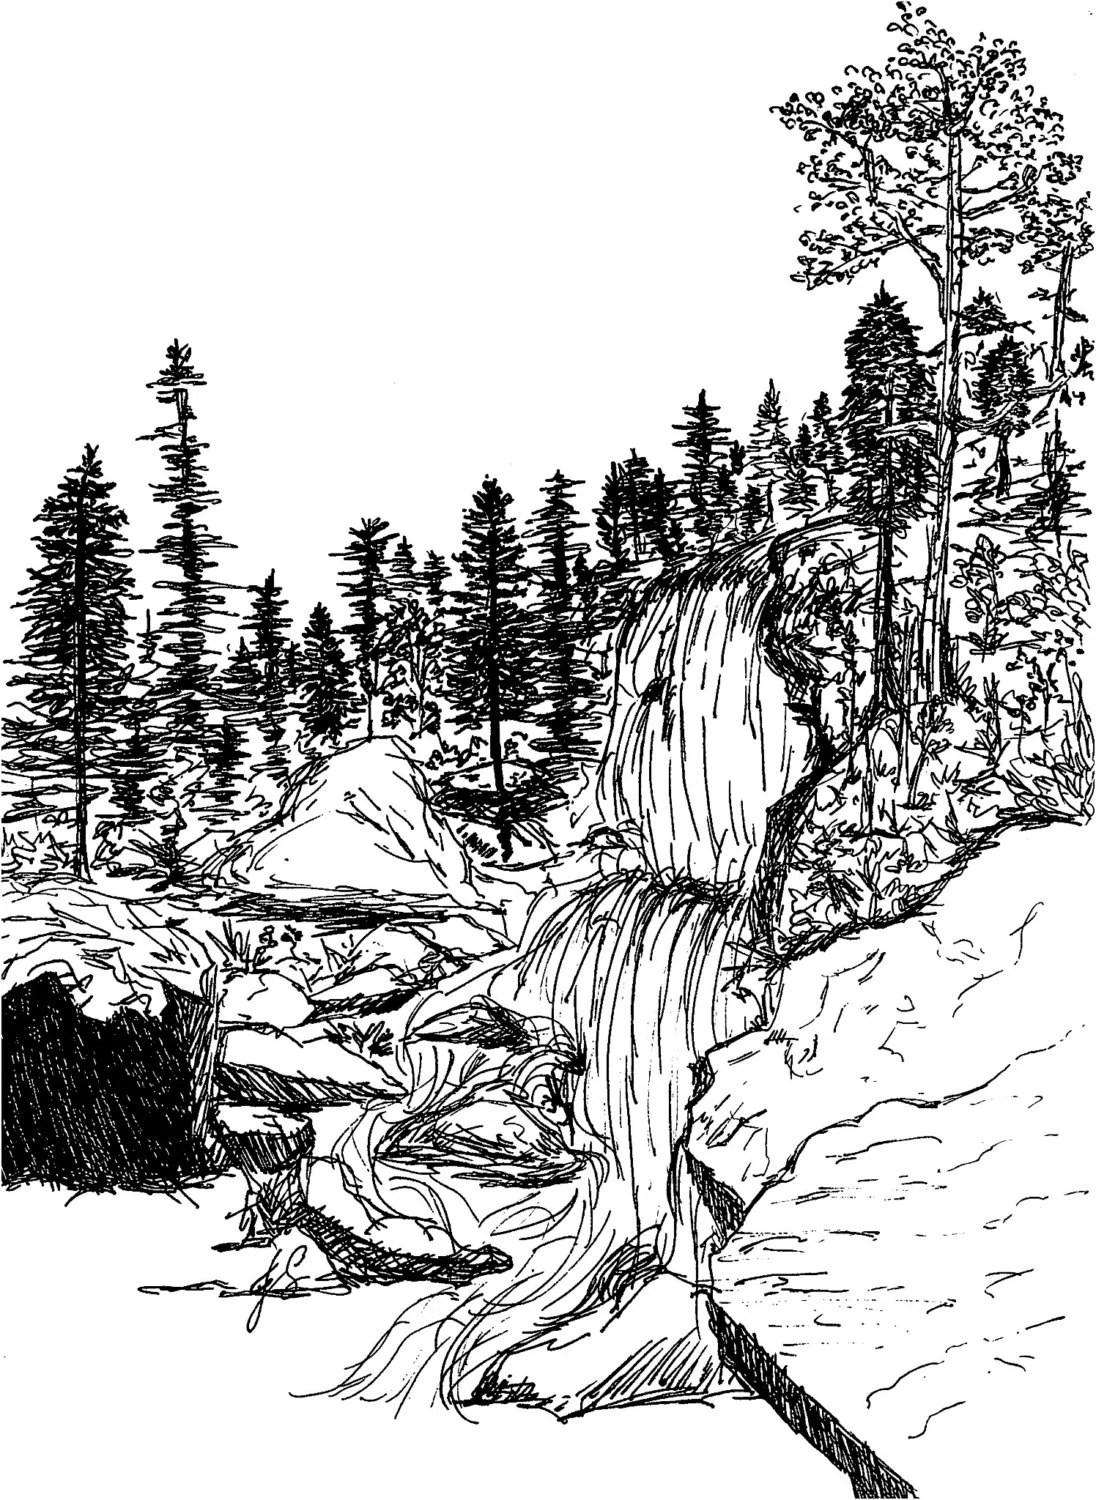 Rocky Mountains Waterfall Ink Sketch Art Print 8x10